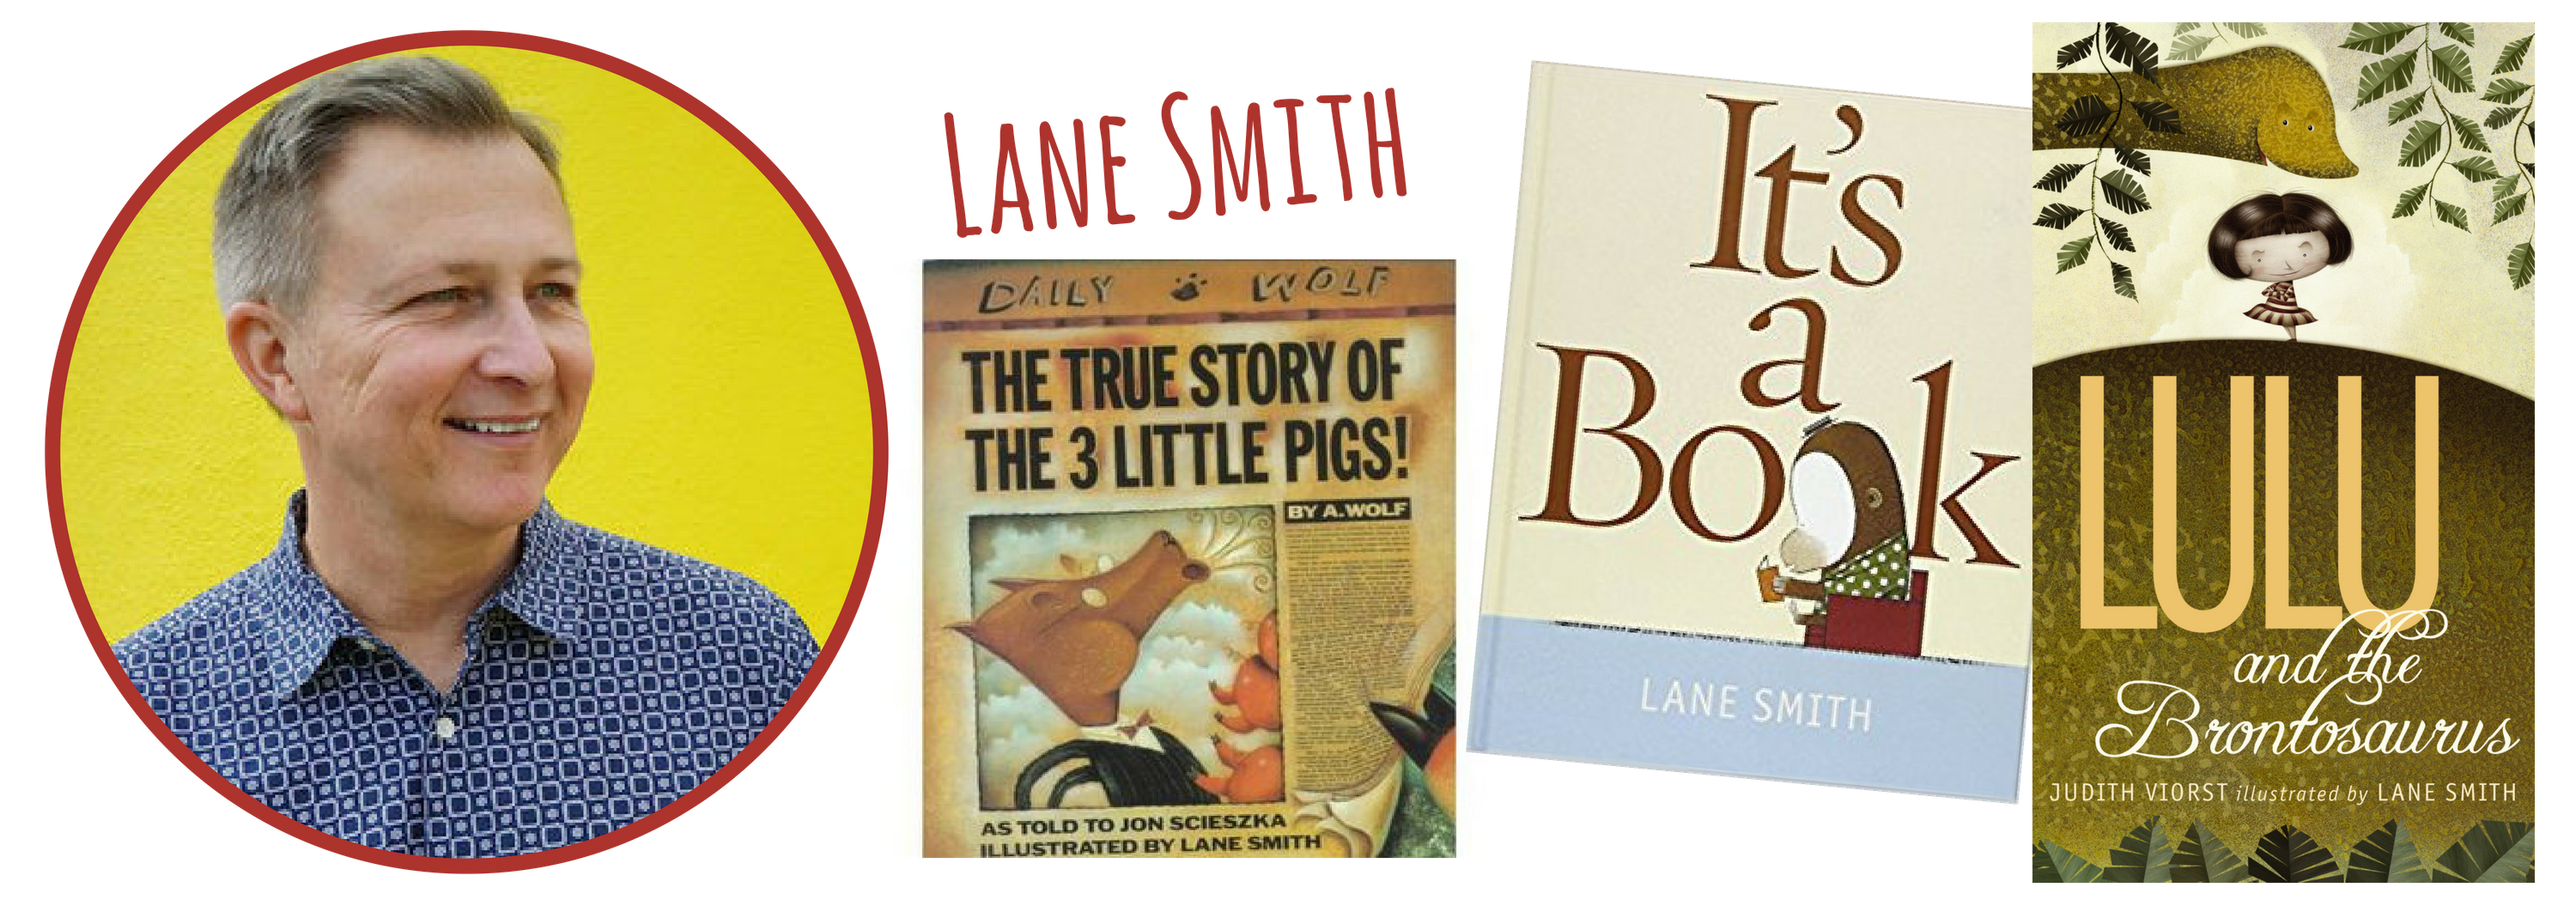 Lane Smith for Chidlren's Book Academy